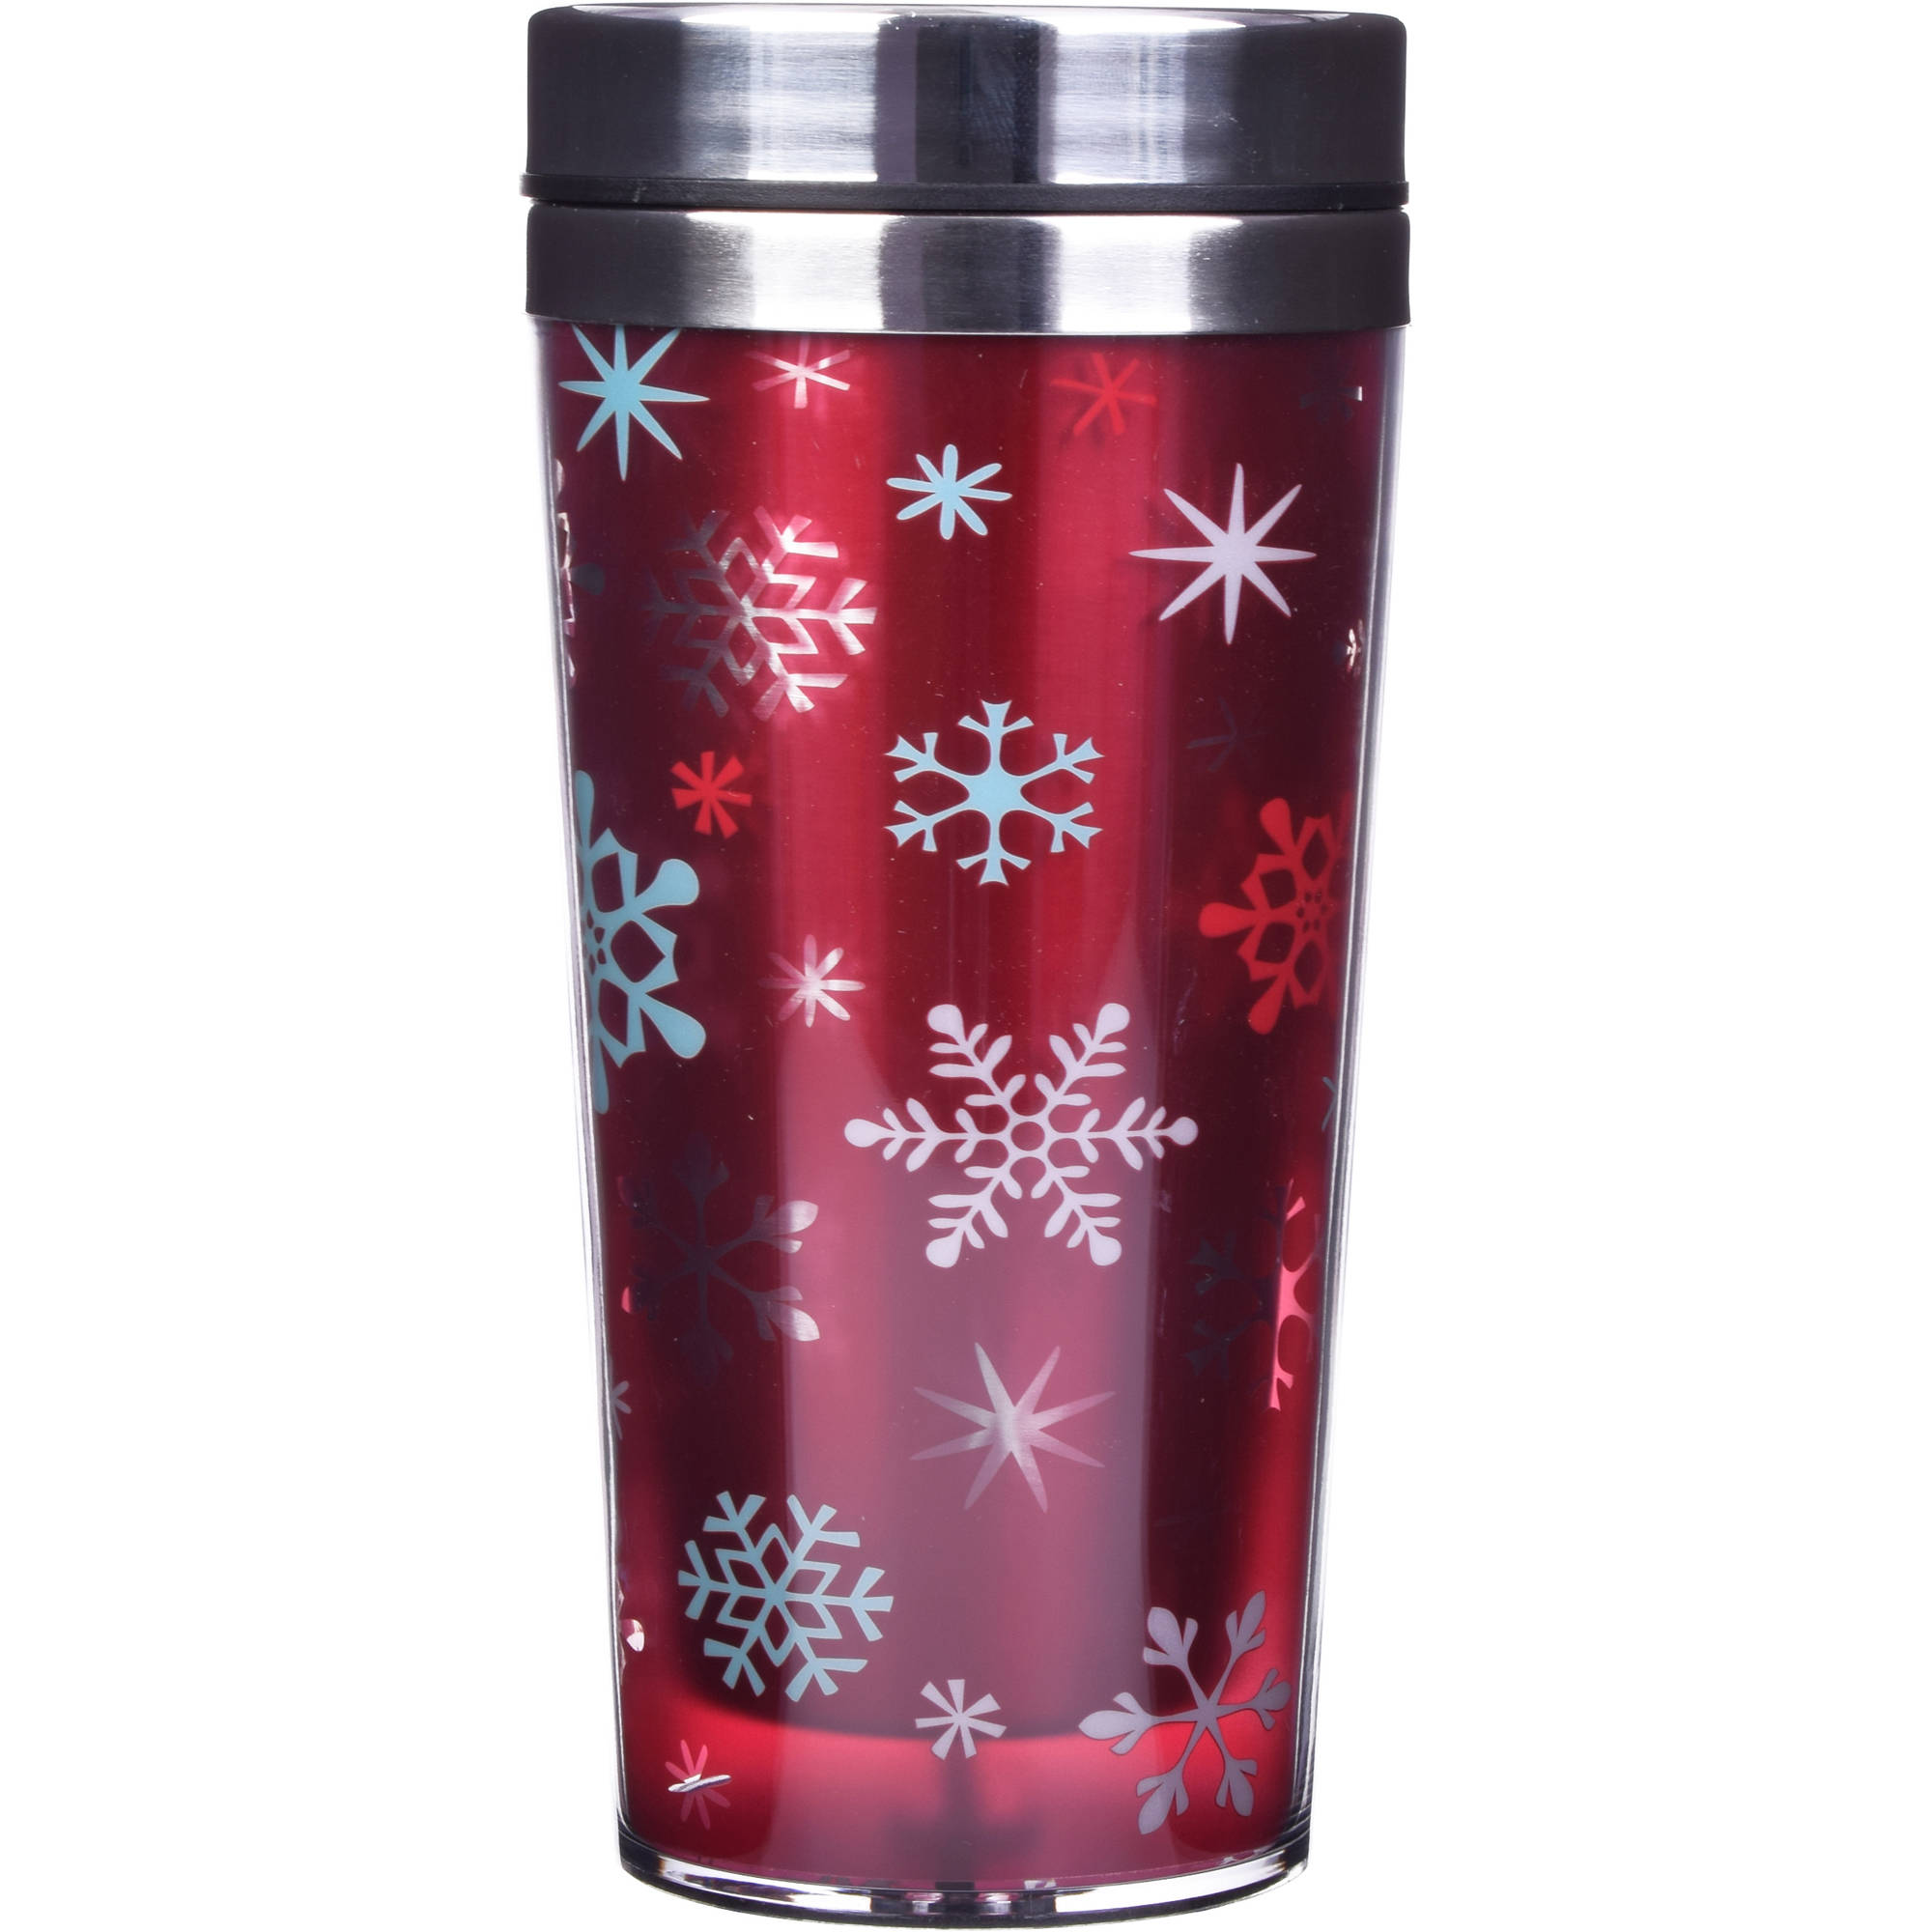 Holiday Time 14 oz Stainless Travel Tumblers, Snowflake, Set of 2